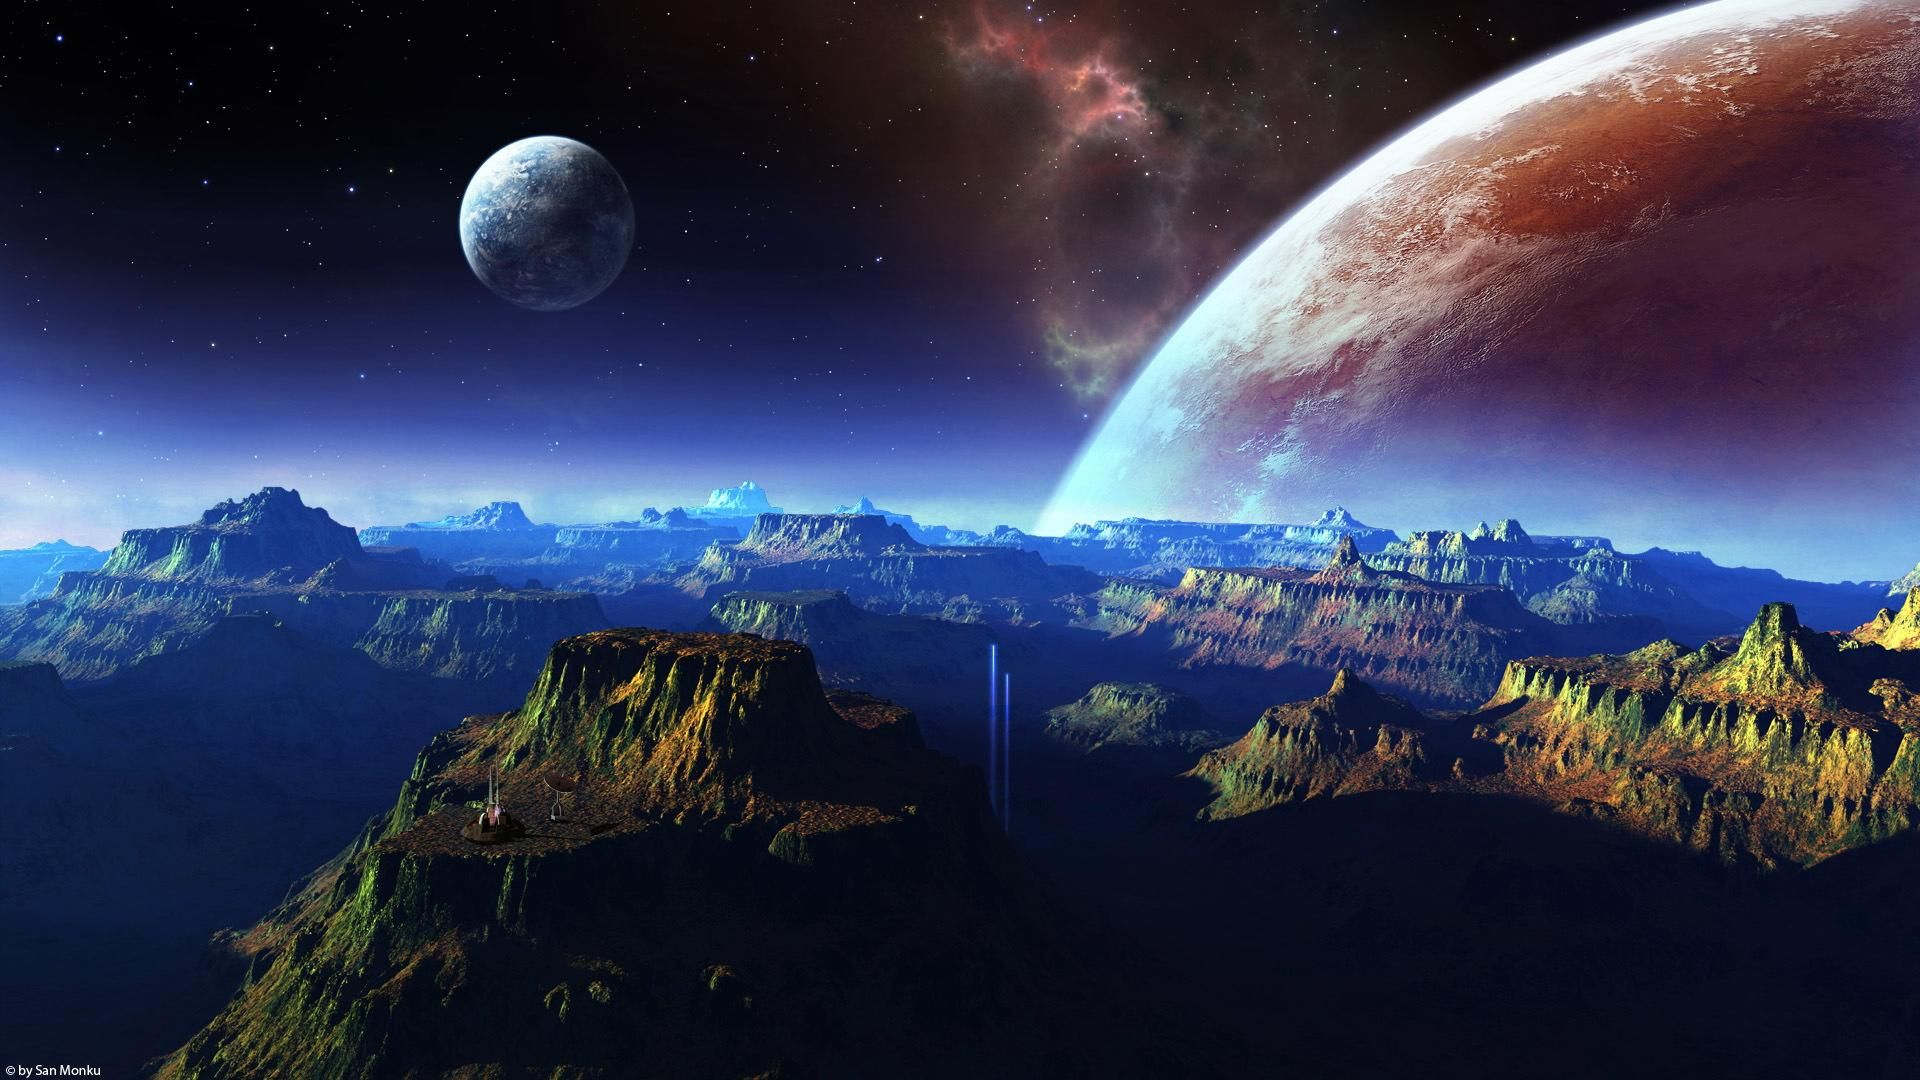 Space HD Wallpapers 1080p Wallpaper Cave Papel de